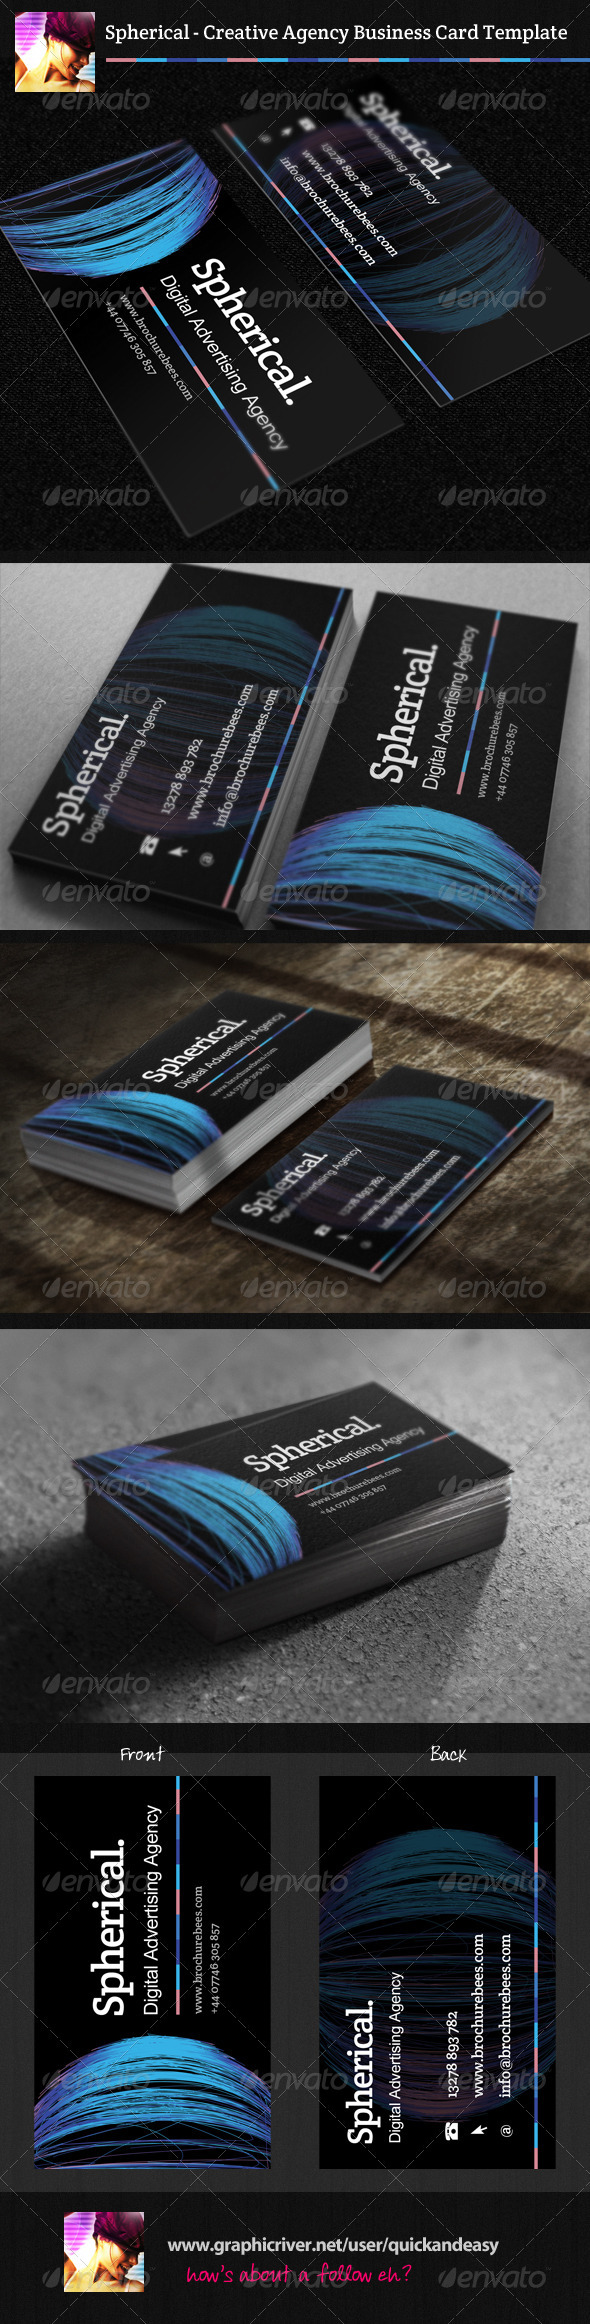 Spherical Business Card Template - Creative Business Cards